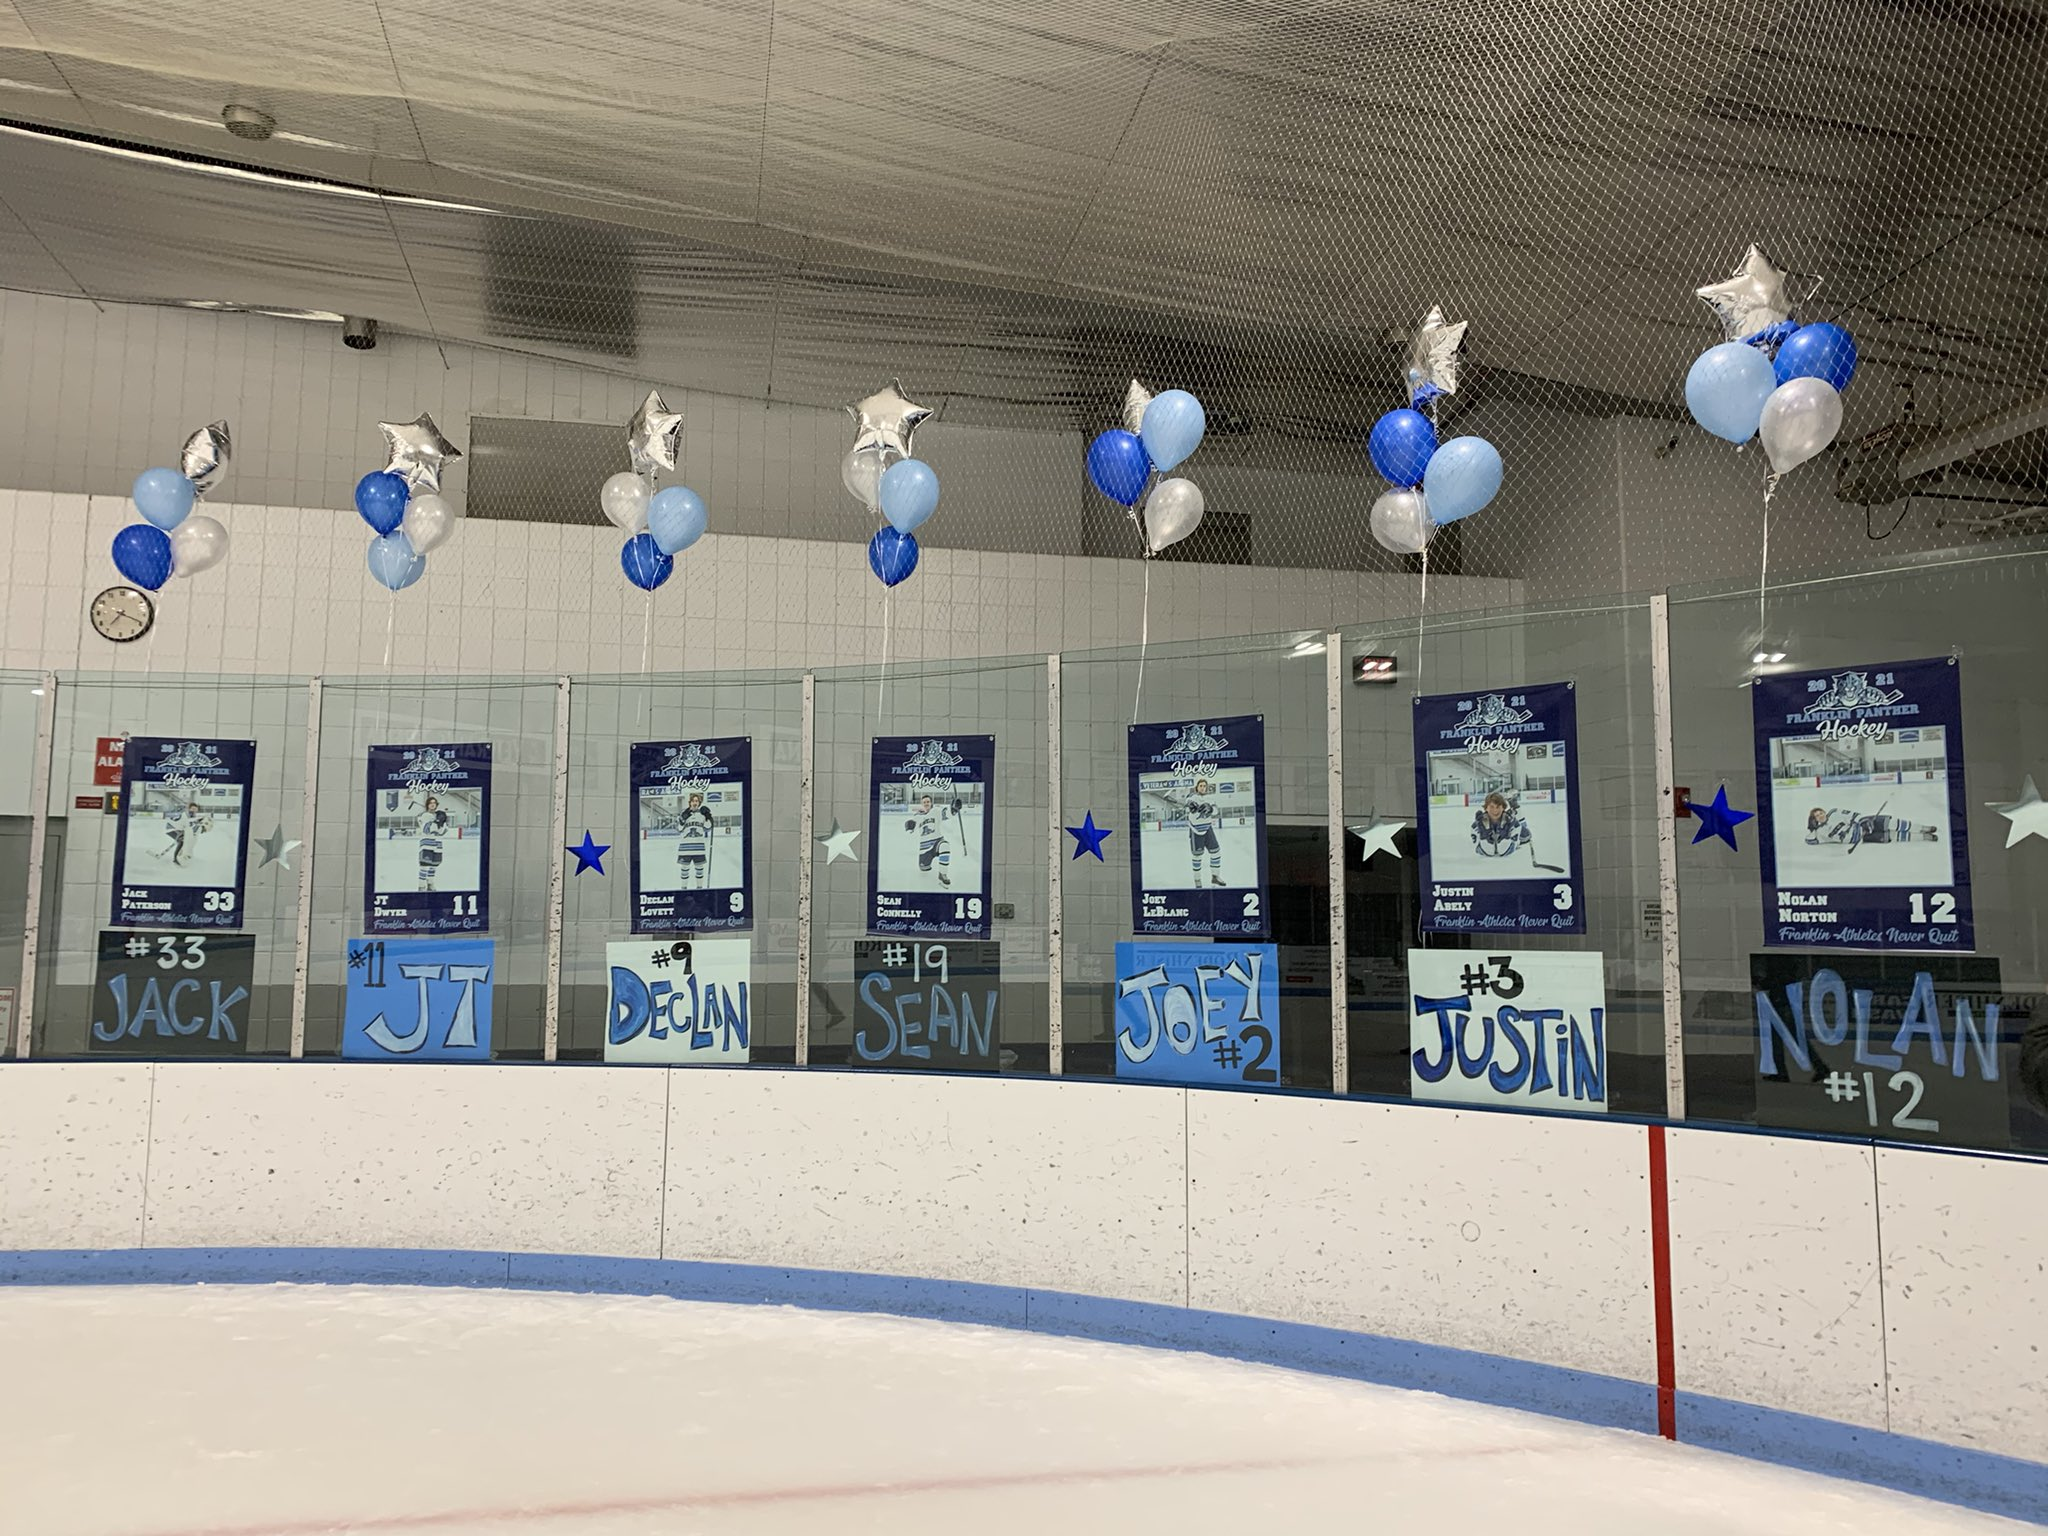 Senior Night!  Congratulations to all our seniors and their families. @FHSSports  @PanthersJvPuck